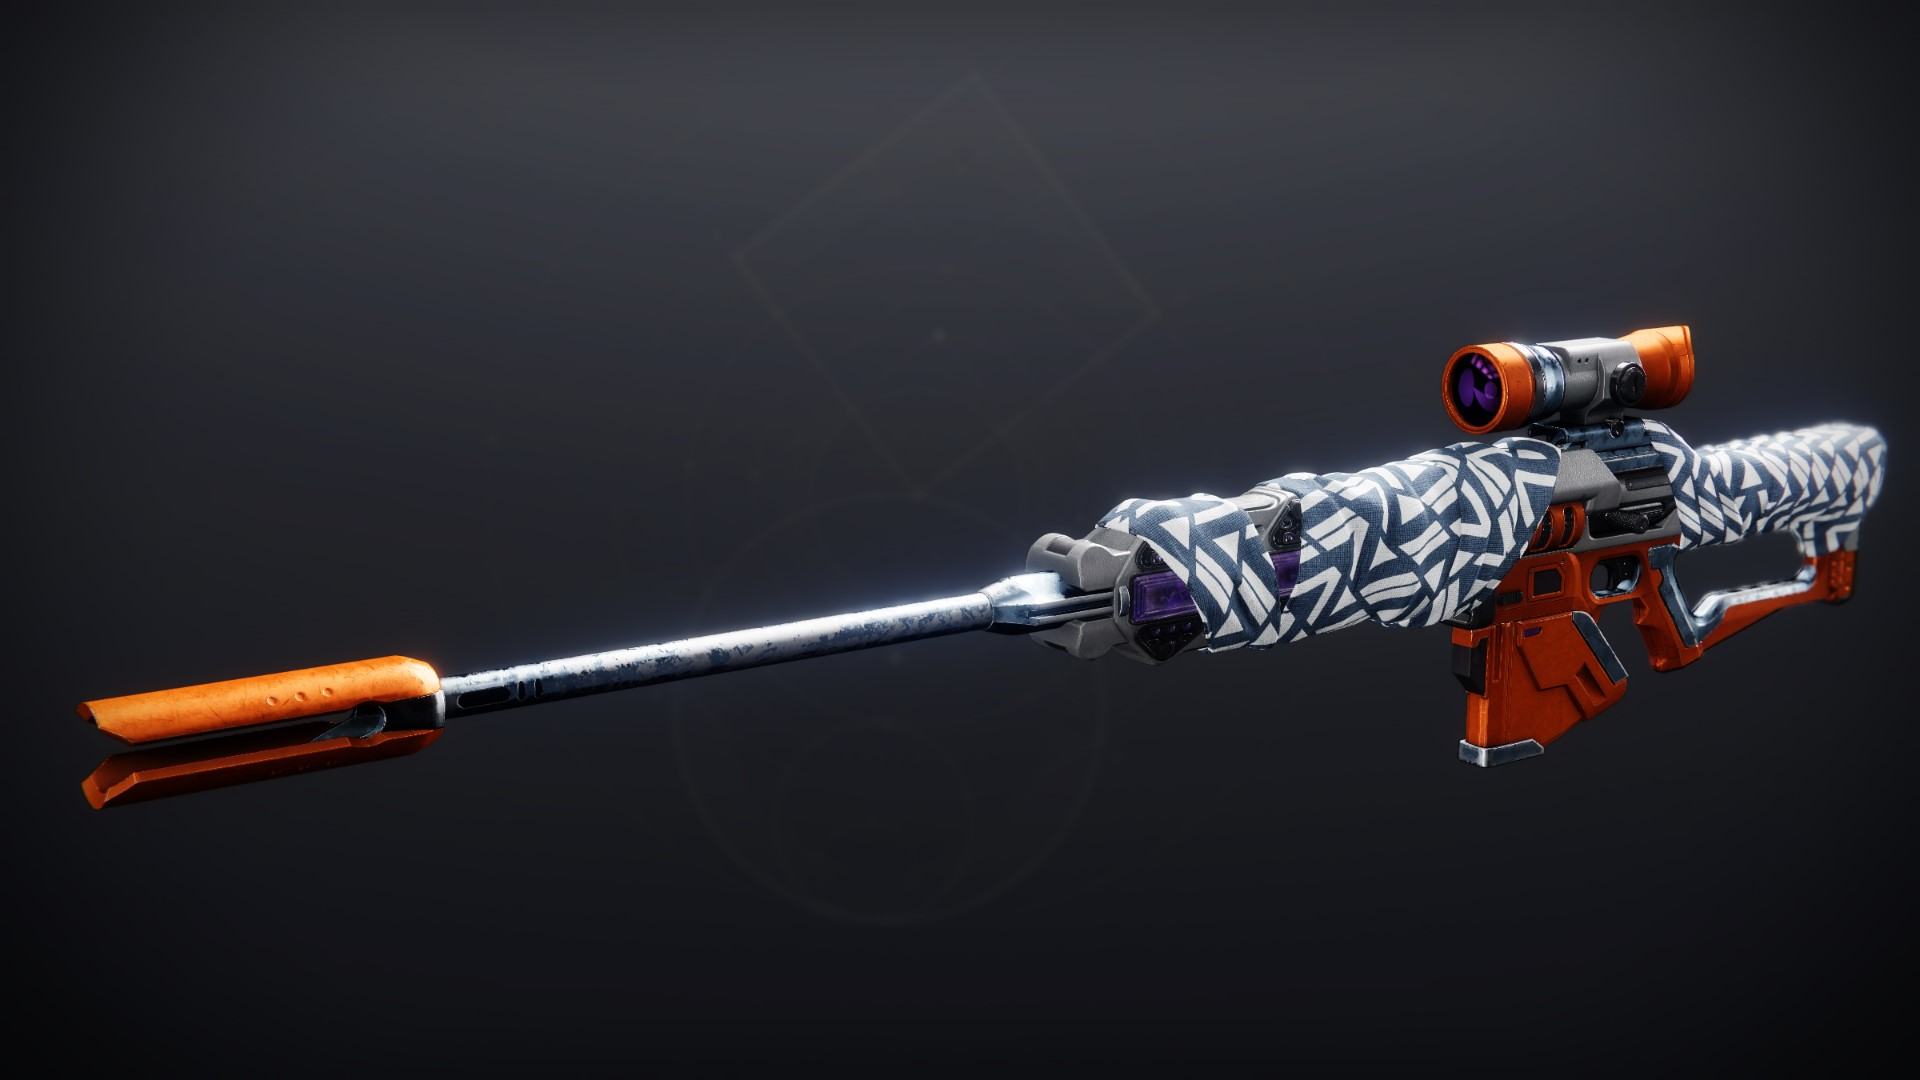 An in-game render of the Balistraria Wrap (Ornament).